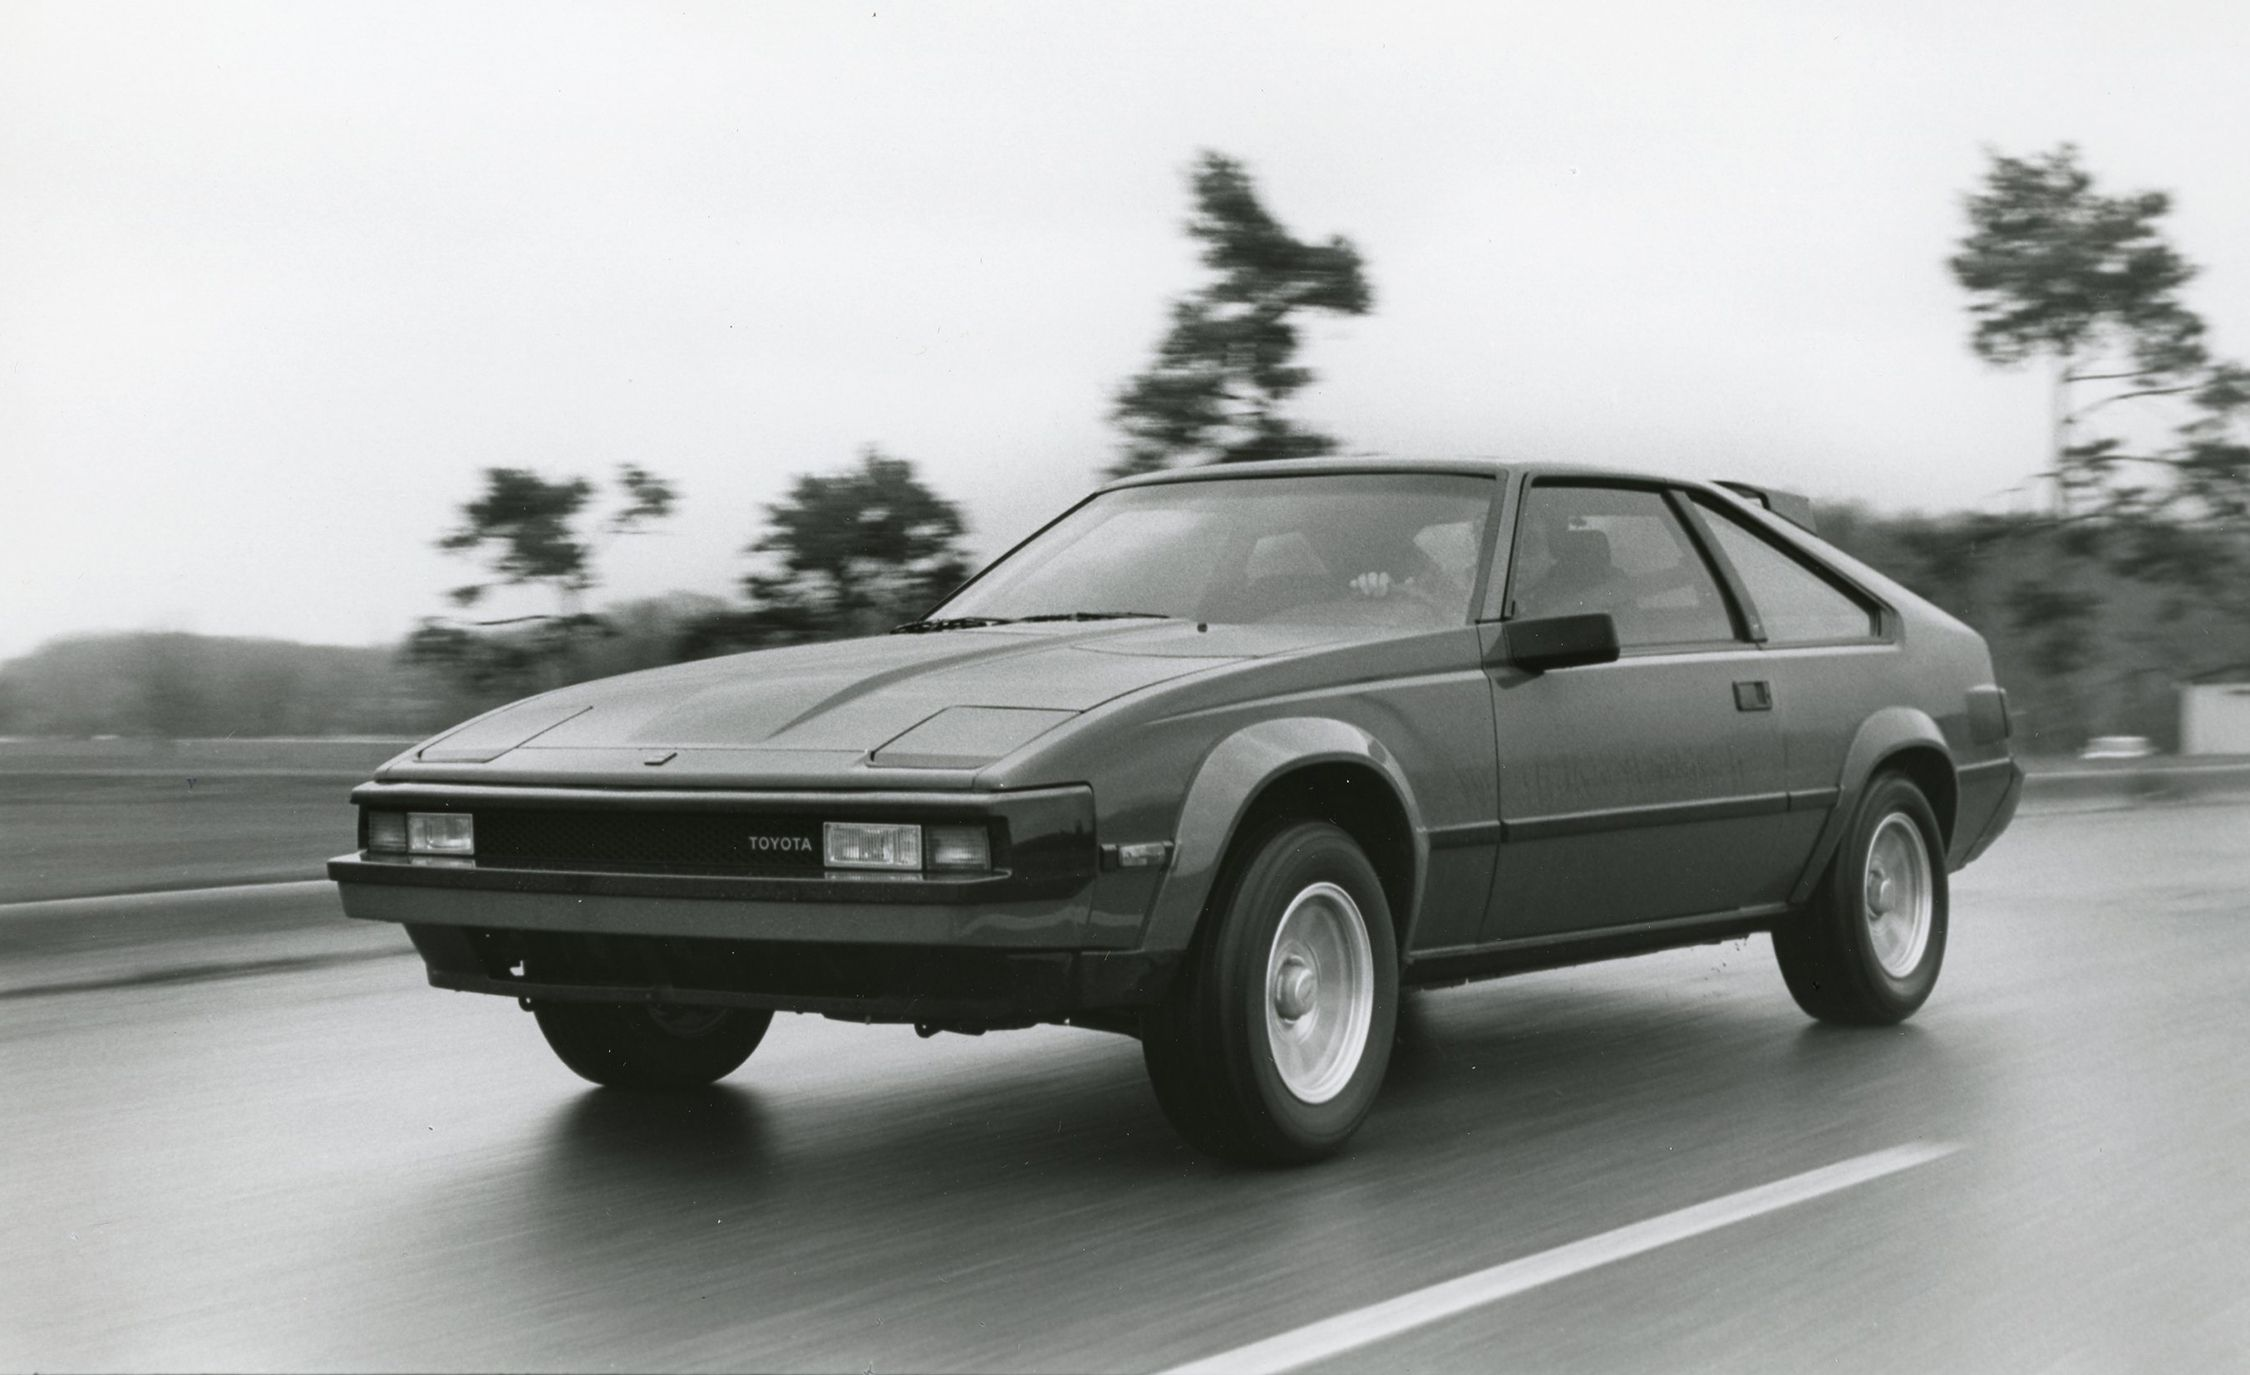 The 1983 Toyota Supra Is One of the All-Time Great Japanese Cars